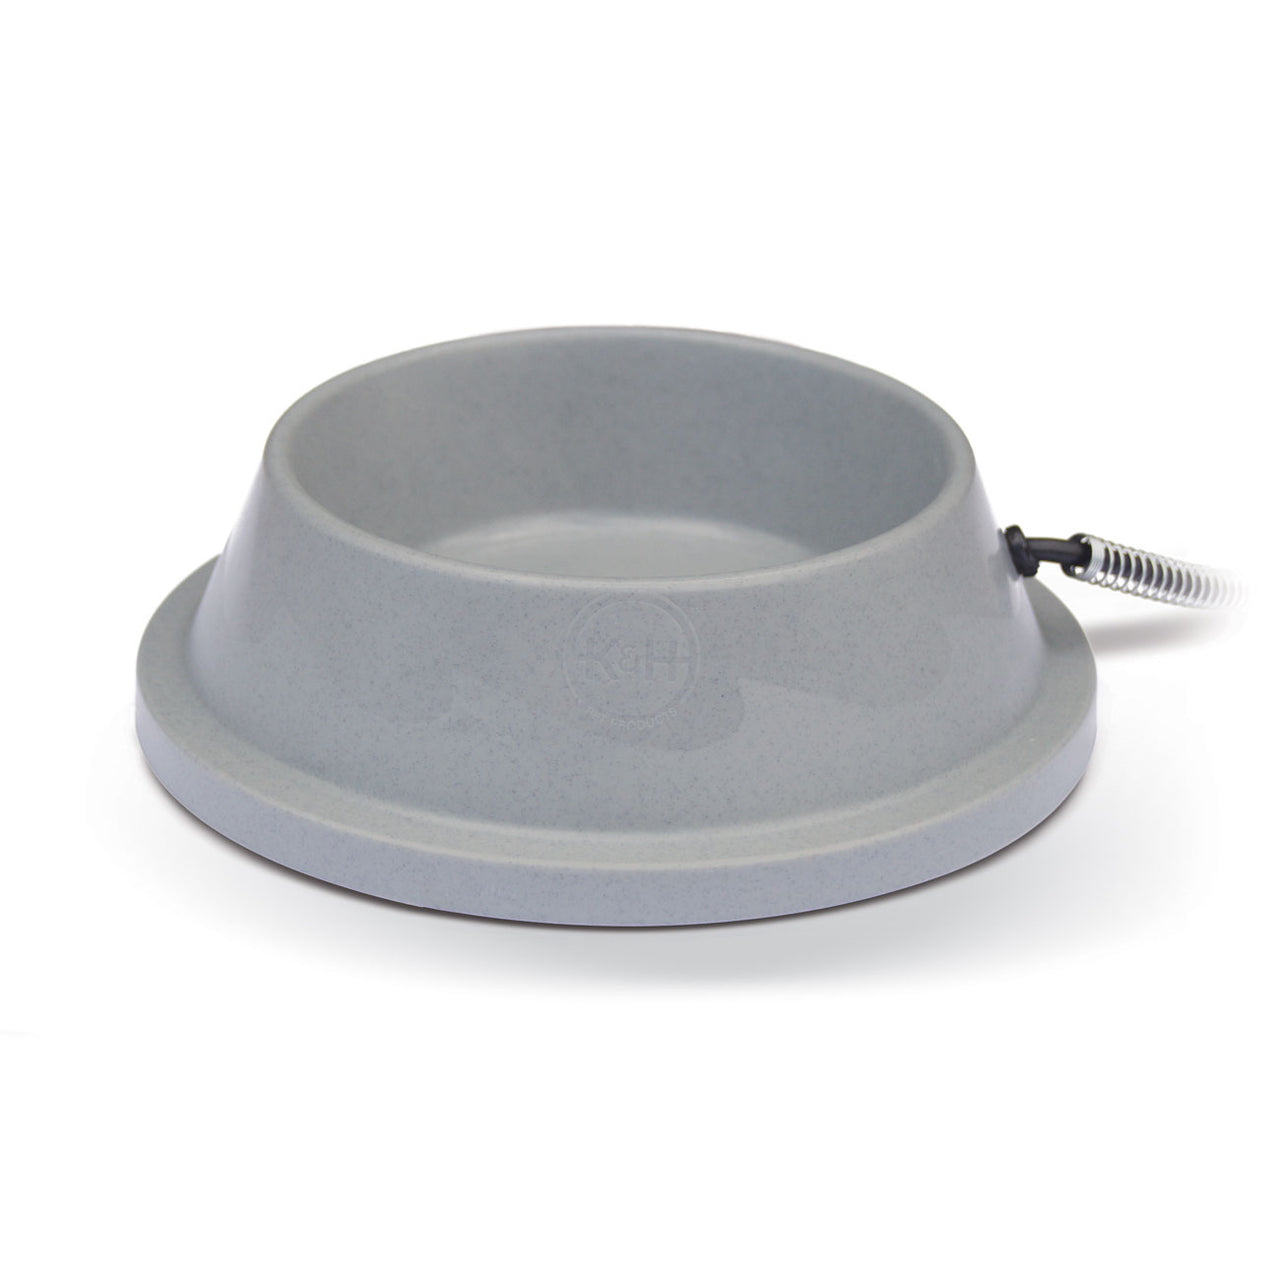 K&h Pet Products Thermal-Bowl 32Oz. Slate Gray 12W - K&h Pet Products - Canada